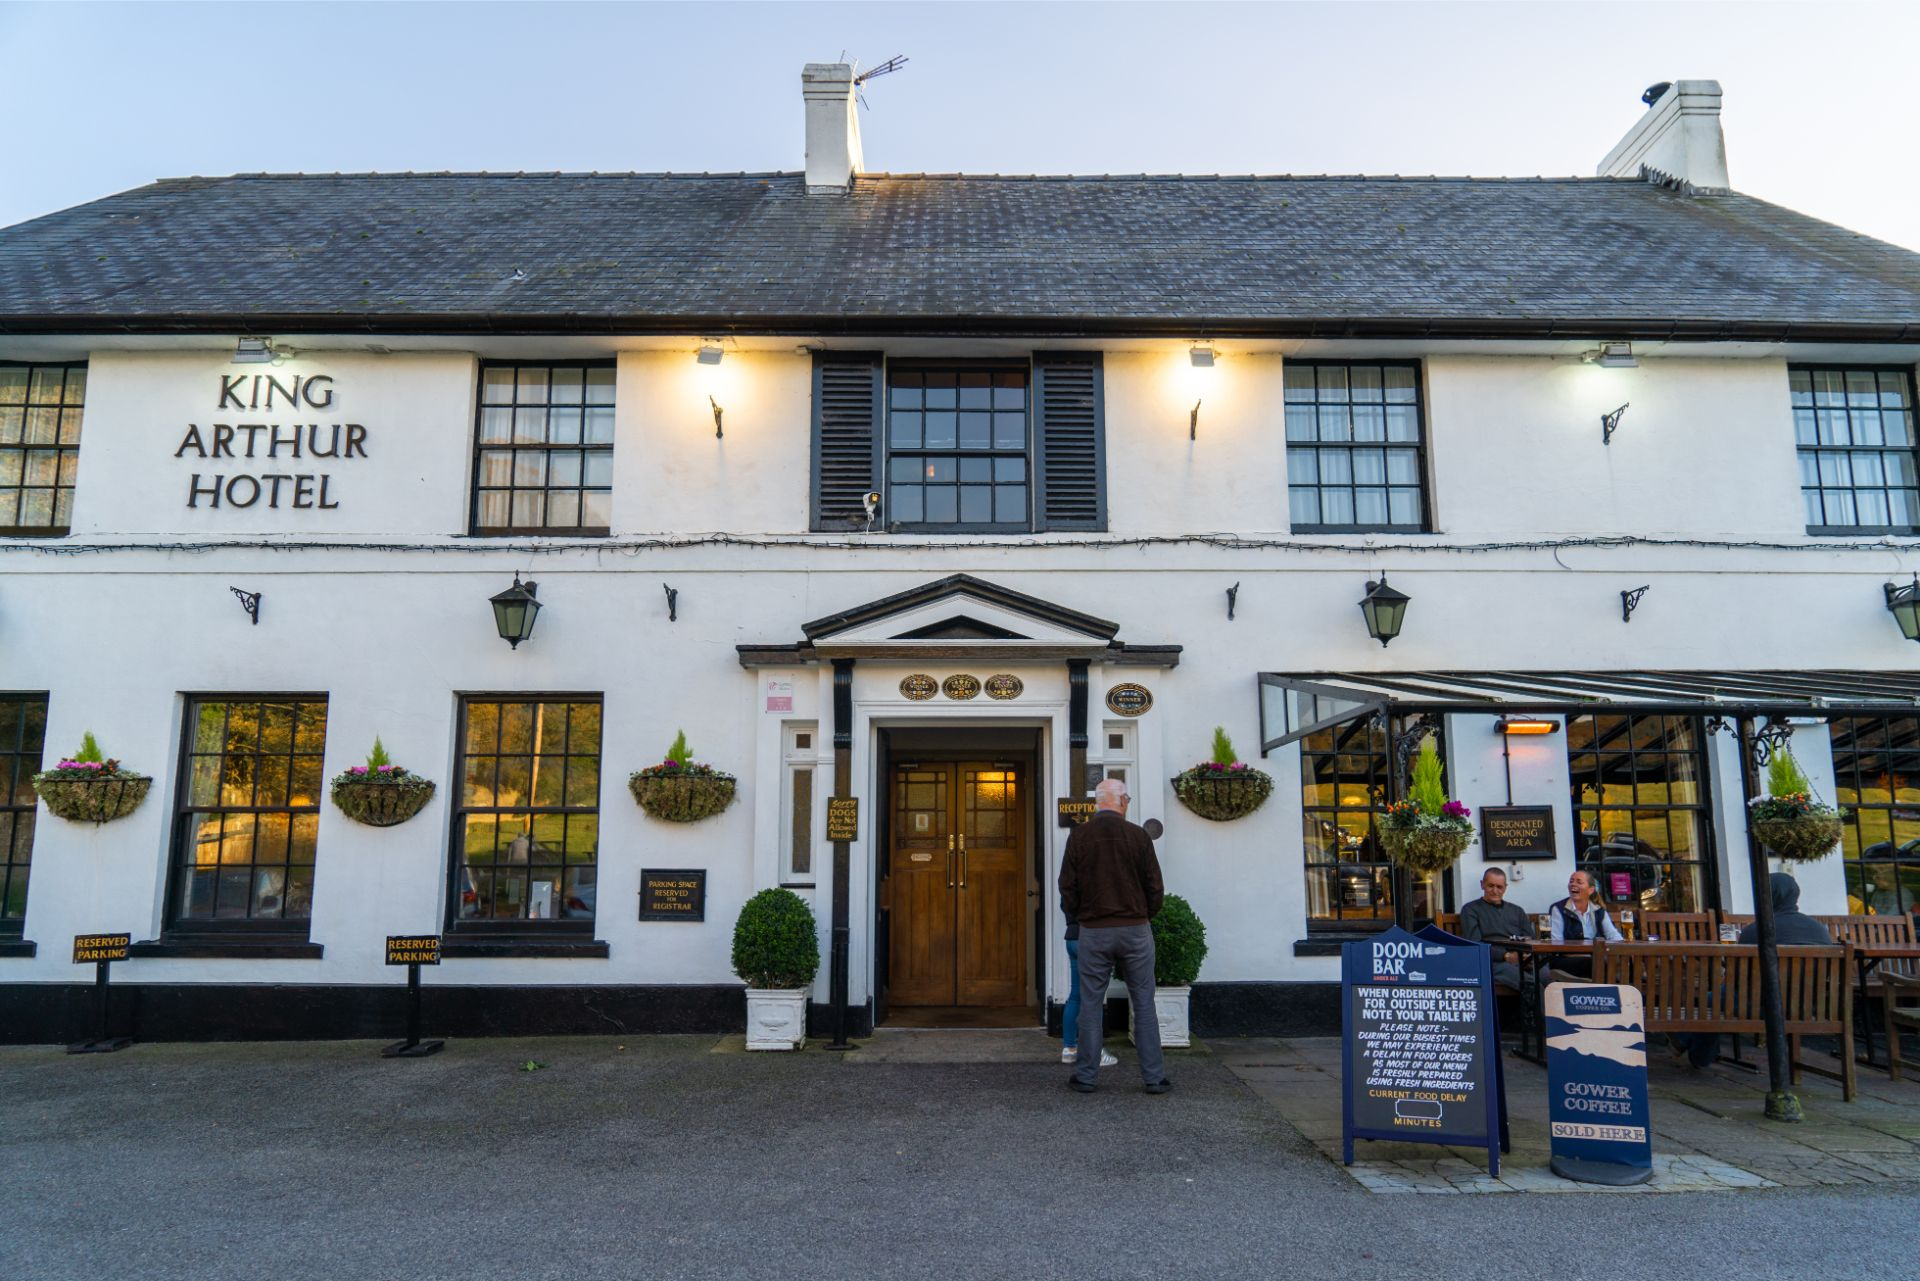 traditional-british-pub-and-hotel-king-arthur-hotel-reynoldston-the-gower-wales